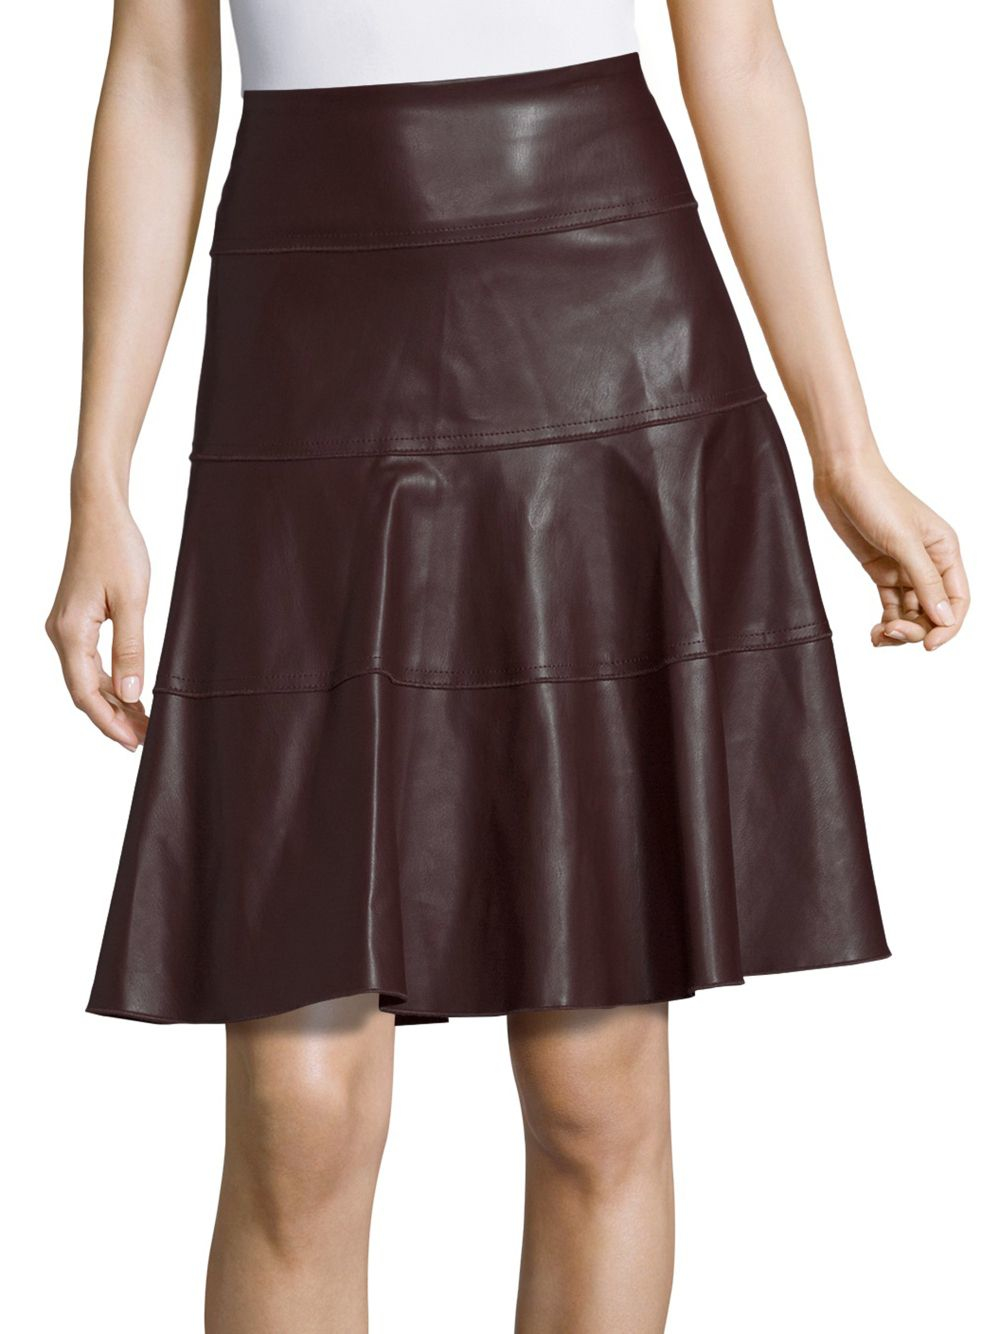 Bagatelle Solid Fit-&-flare Skirt